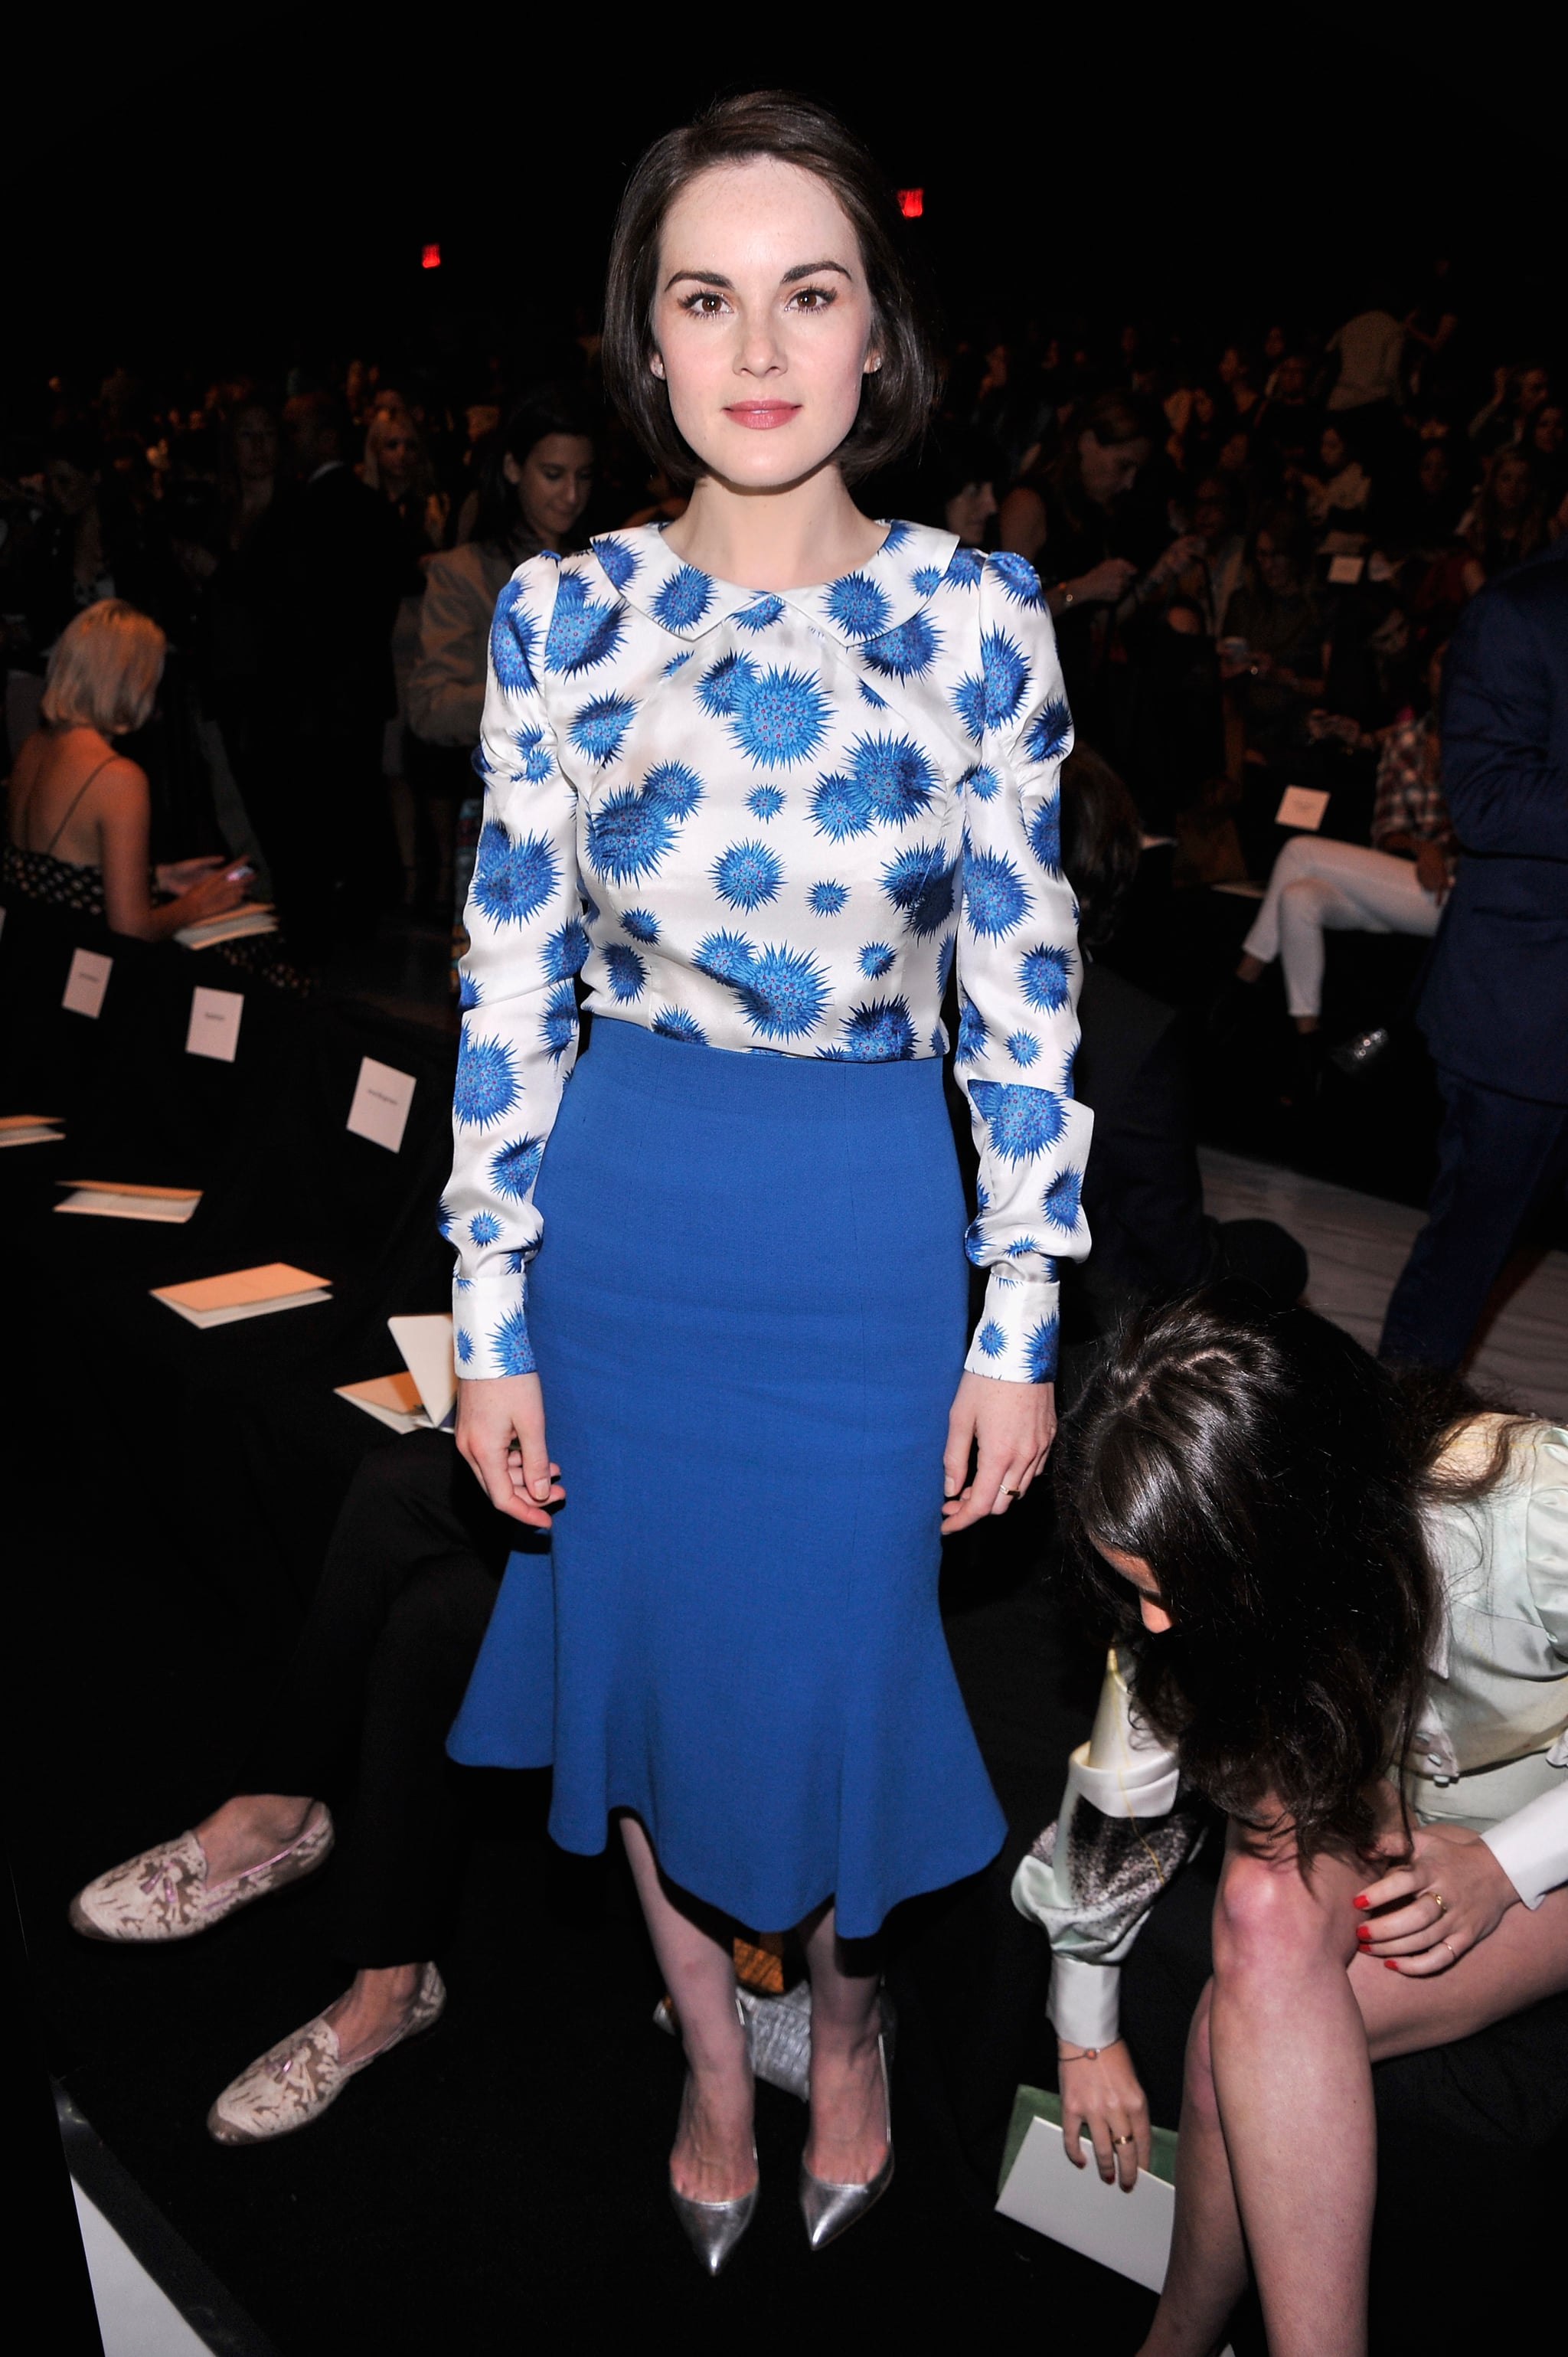 Downton Abbey star Michelle Dockery took her seat in the front row for Monday's Carolina Herrera show.